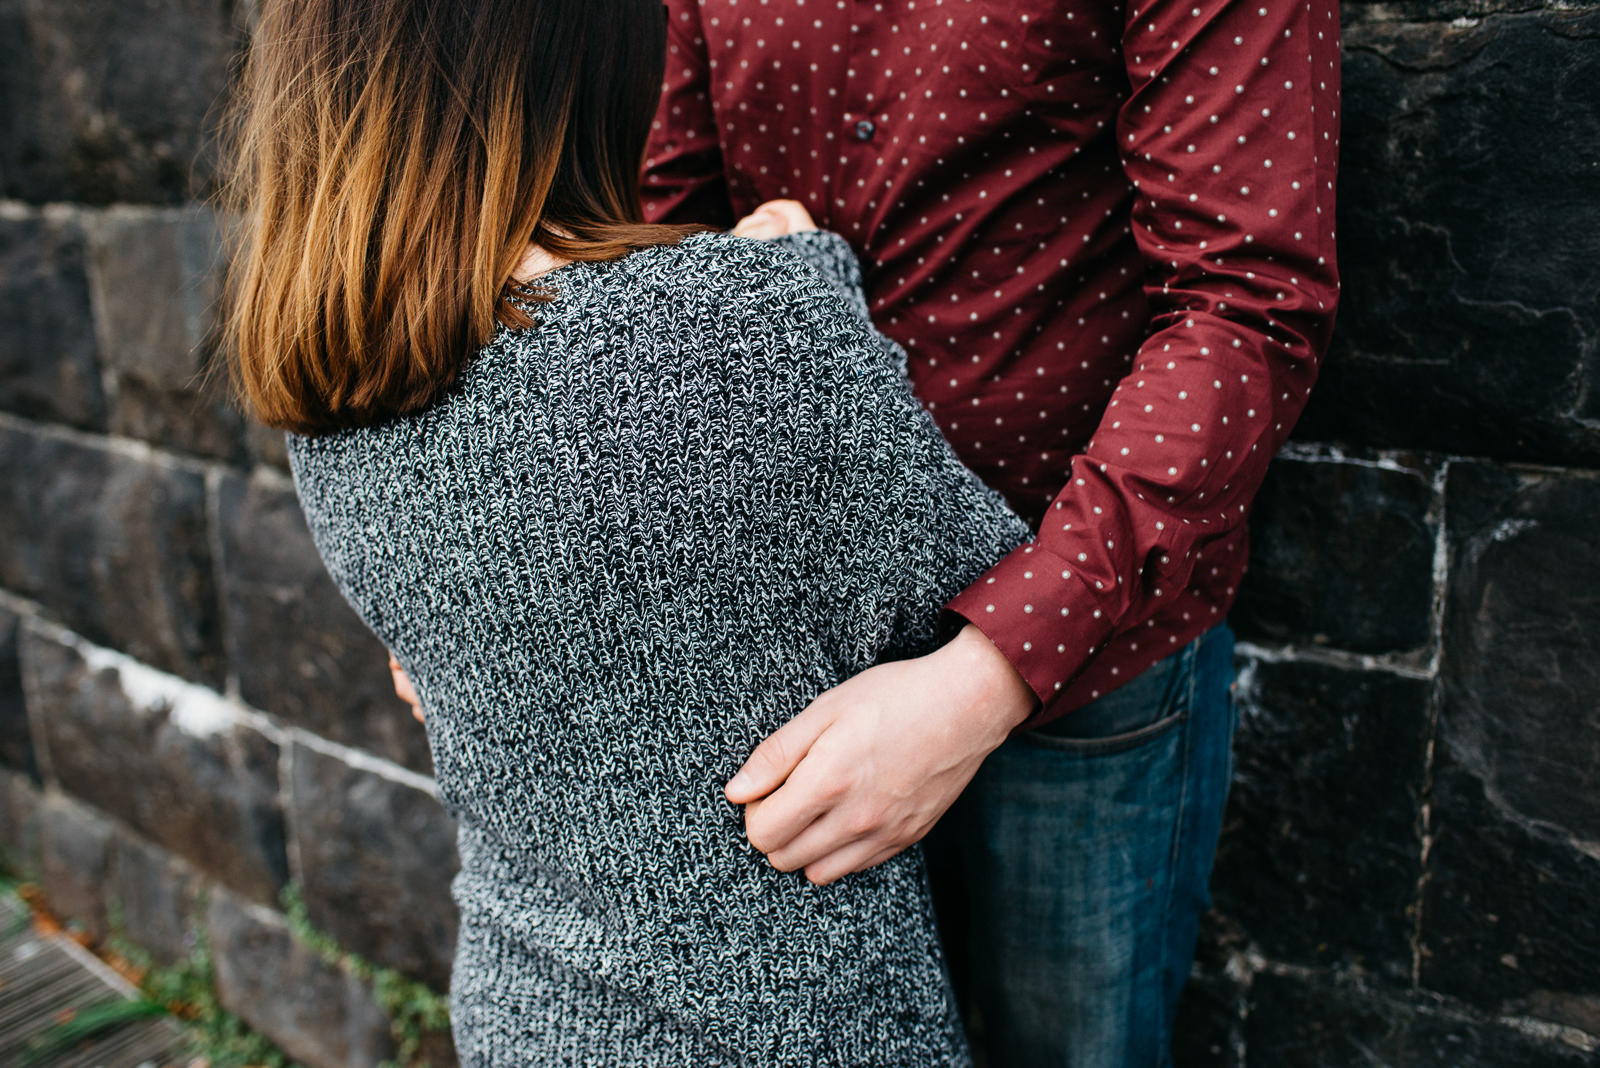 Cardiff bay cwtch engagement // Elaine Williams Photography